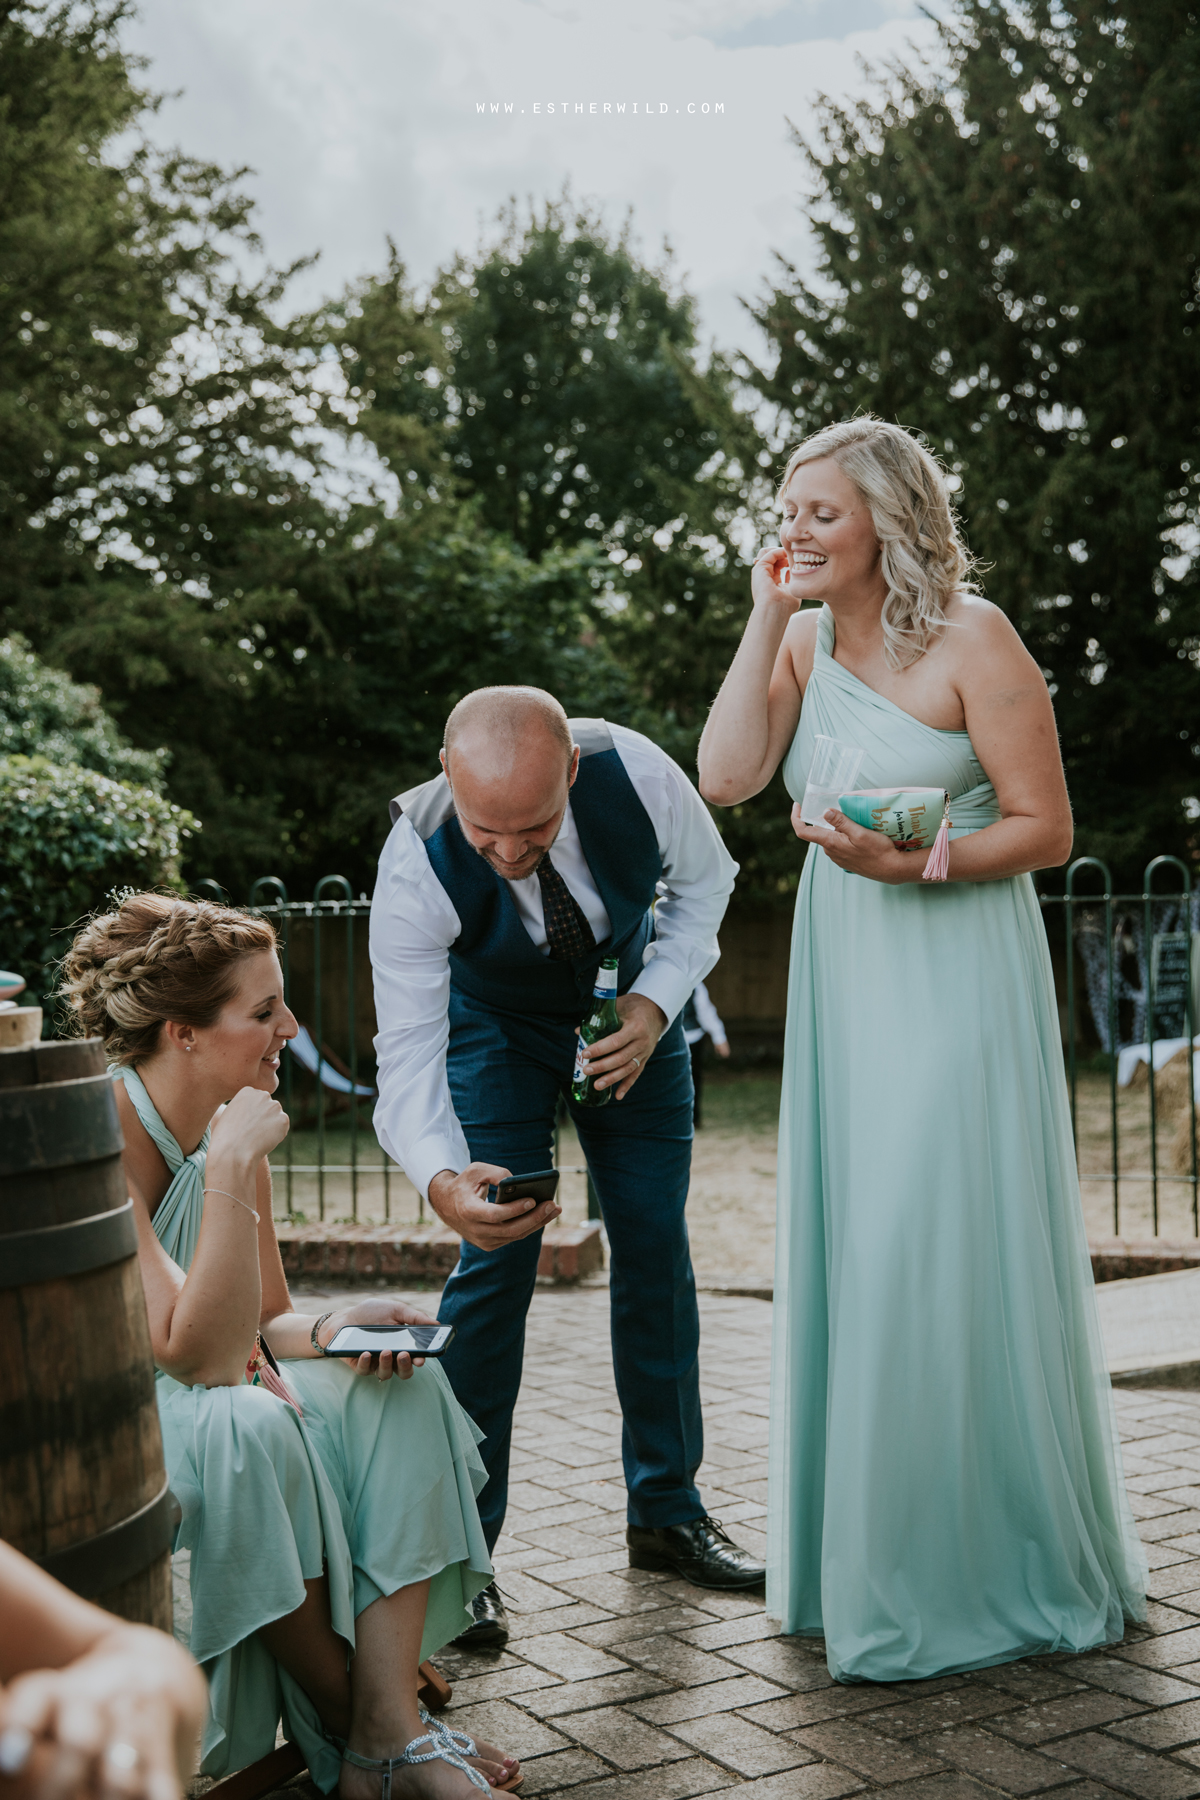 Swaffham_Wedding_Castle_Acre_Norfolk_Esther_Wild_Photographer_Wedding_Photography_3R8A1537.jpg